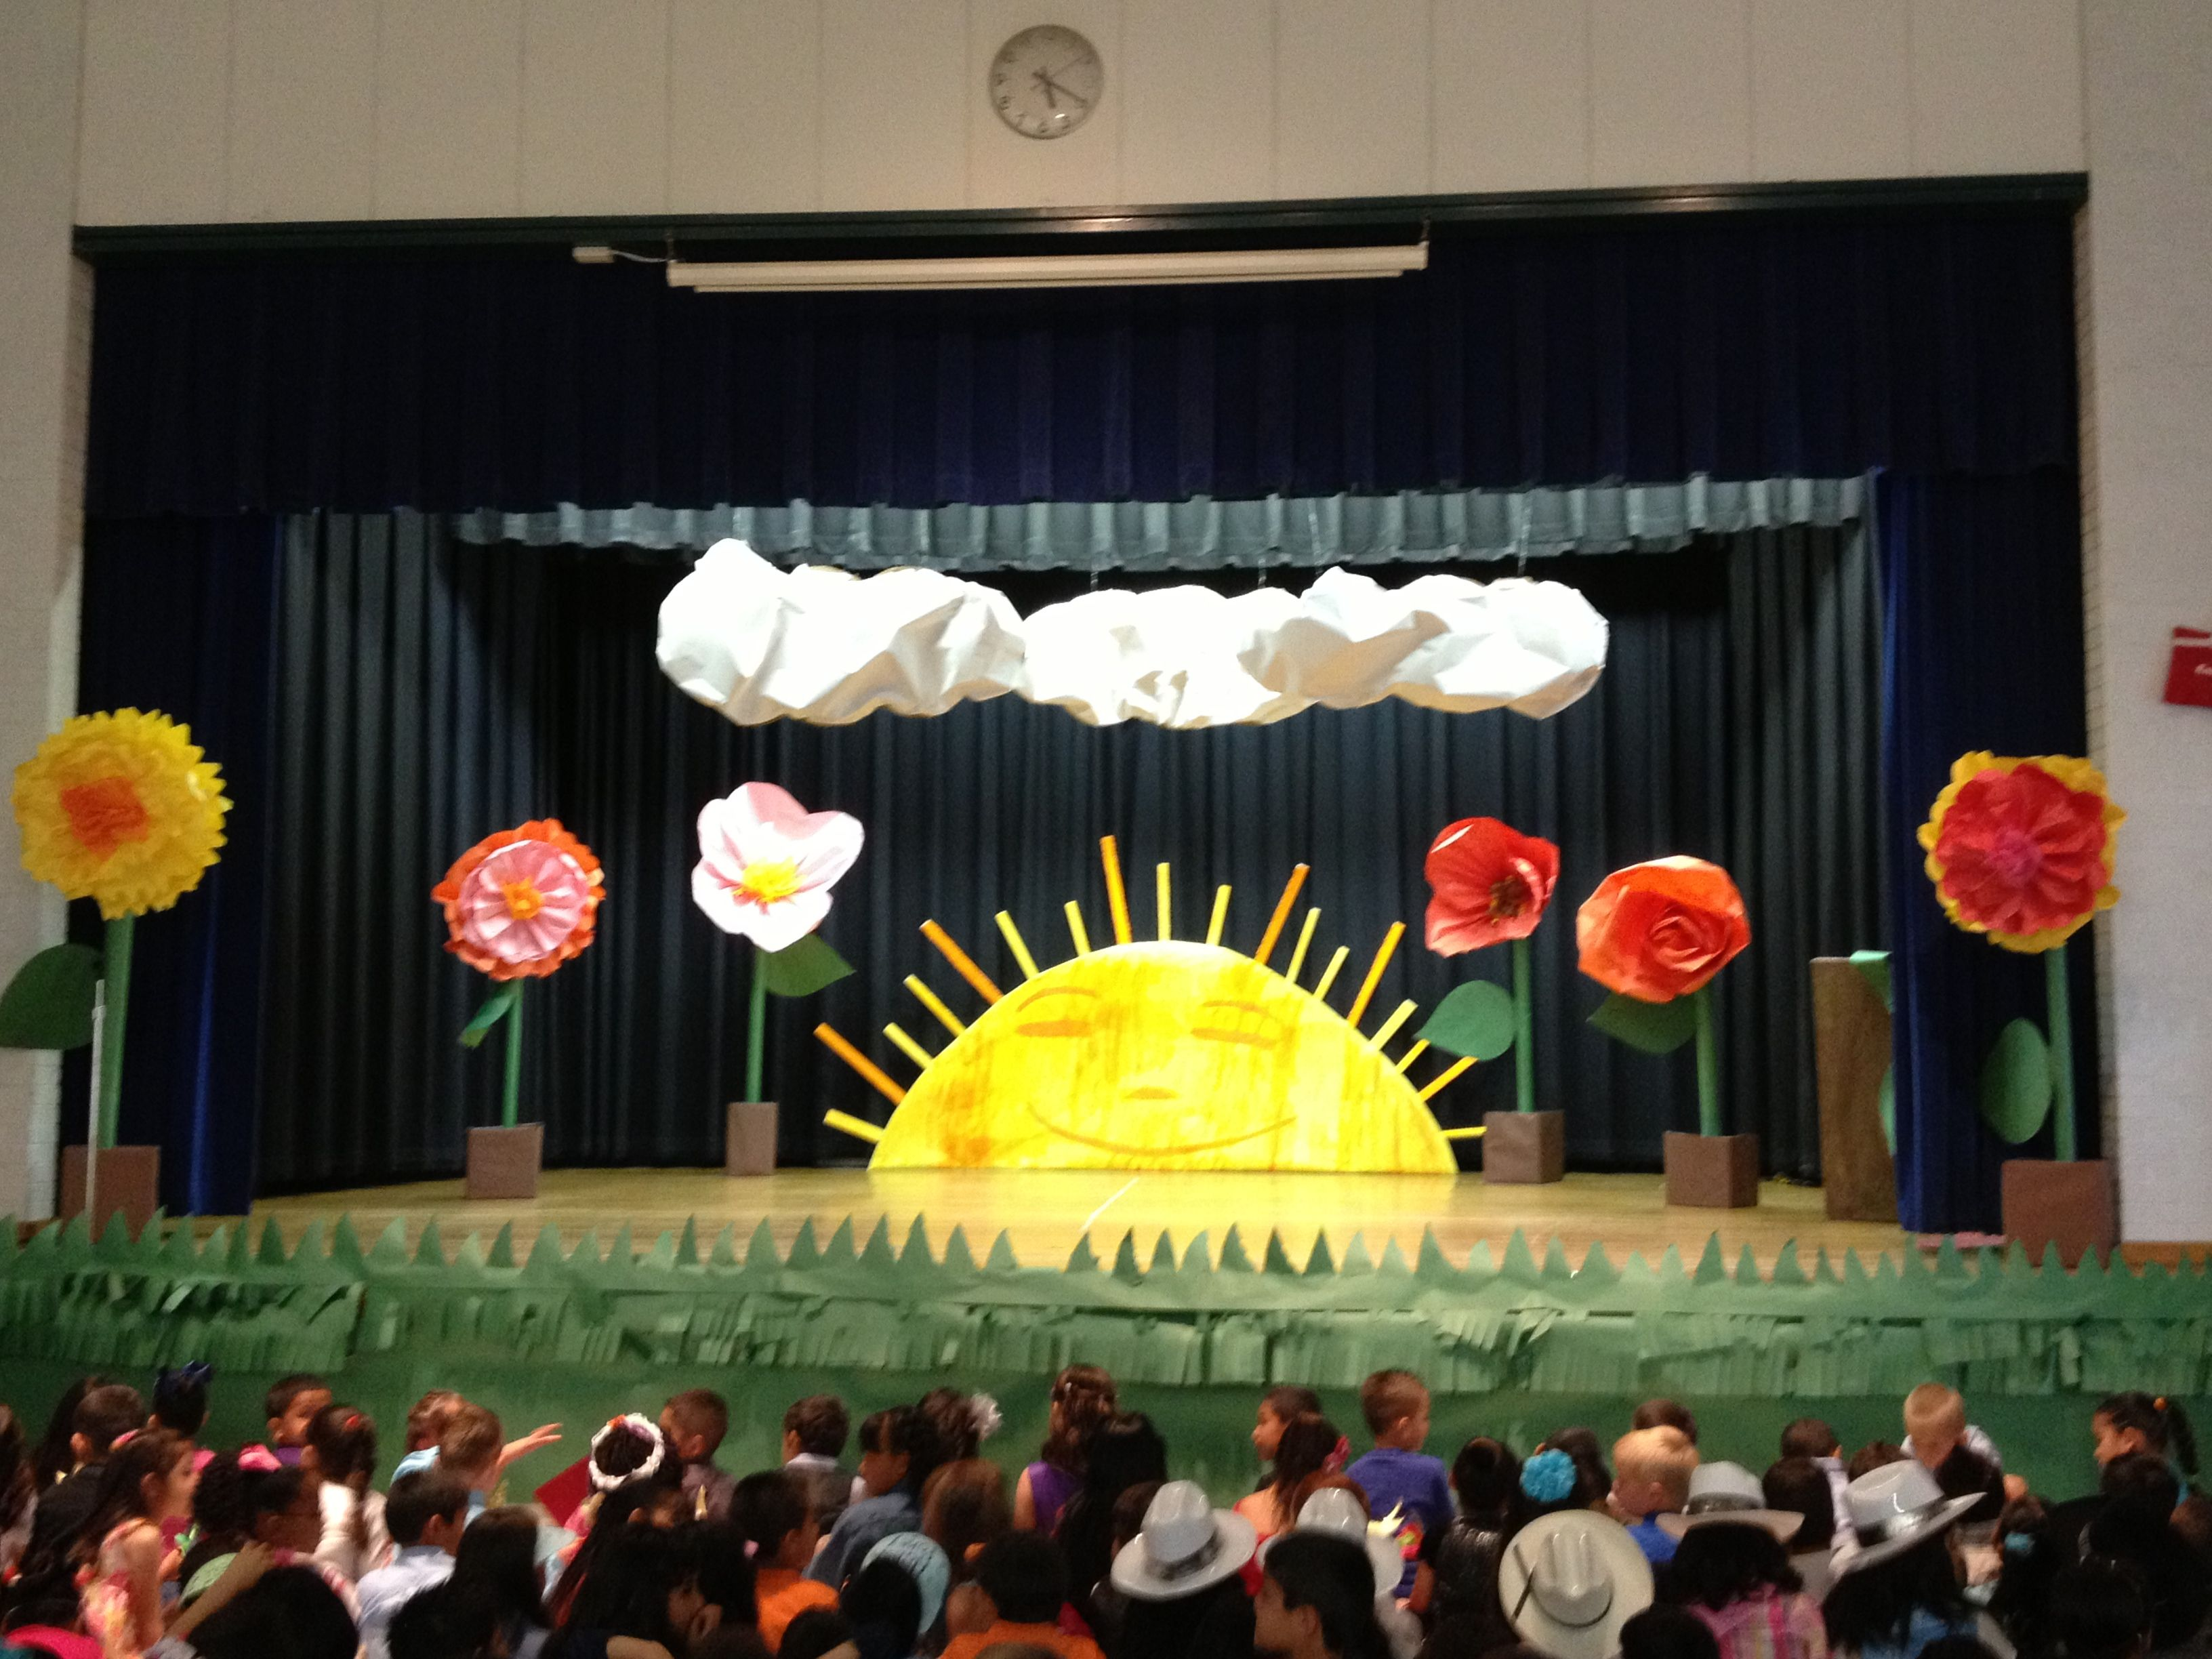 Eric carle stage set up kindergarten pinterest kindergarten graduation graduation and school - Kindergarten graduation decorations ...